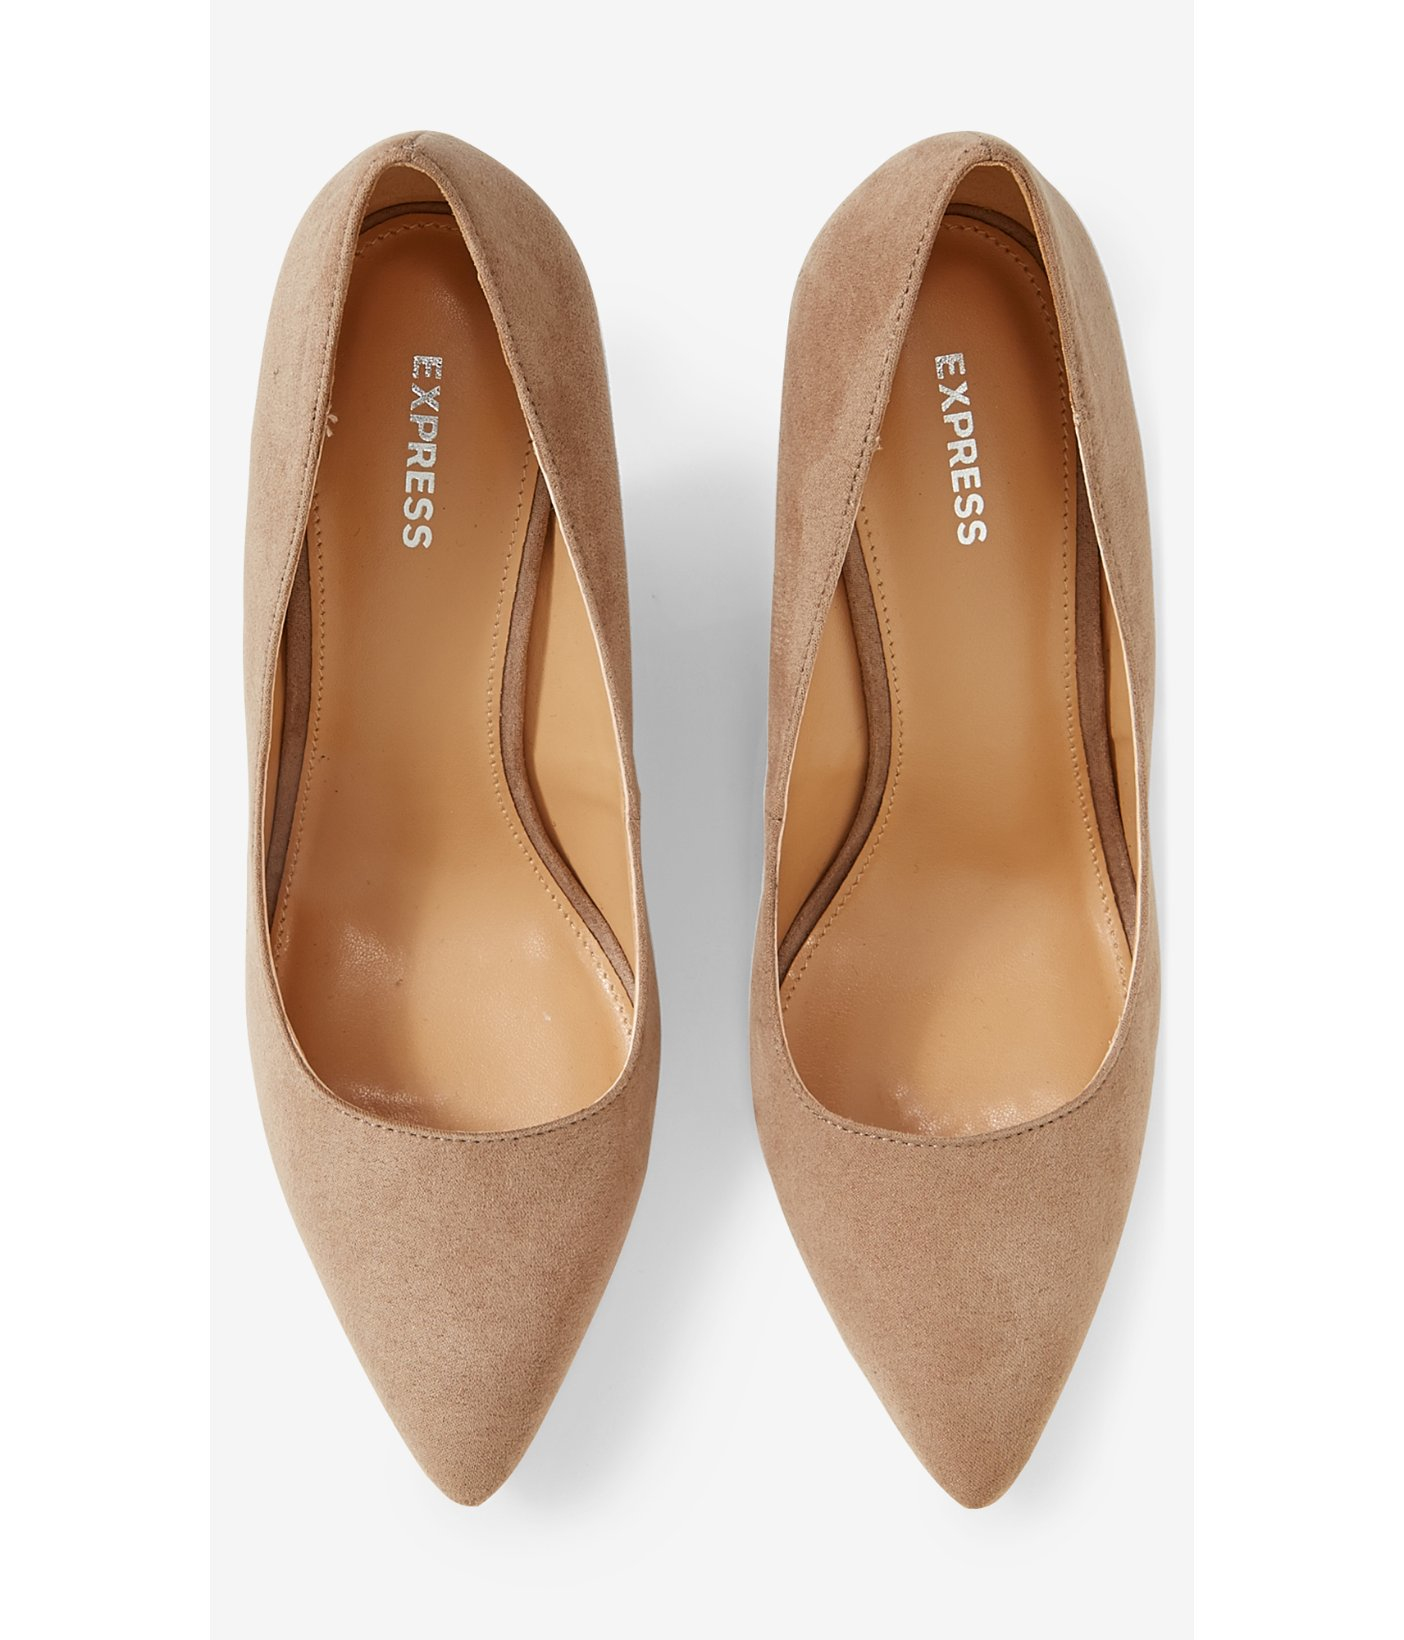 7cb4ca869e3 Lyst - Express Tan Faux Suede Pointed Toe Wedge Pump in Brown